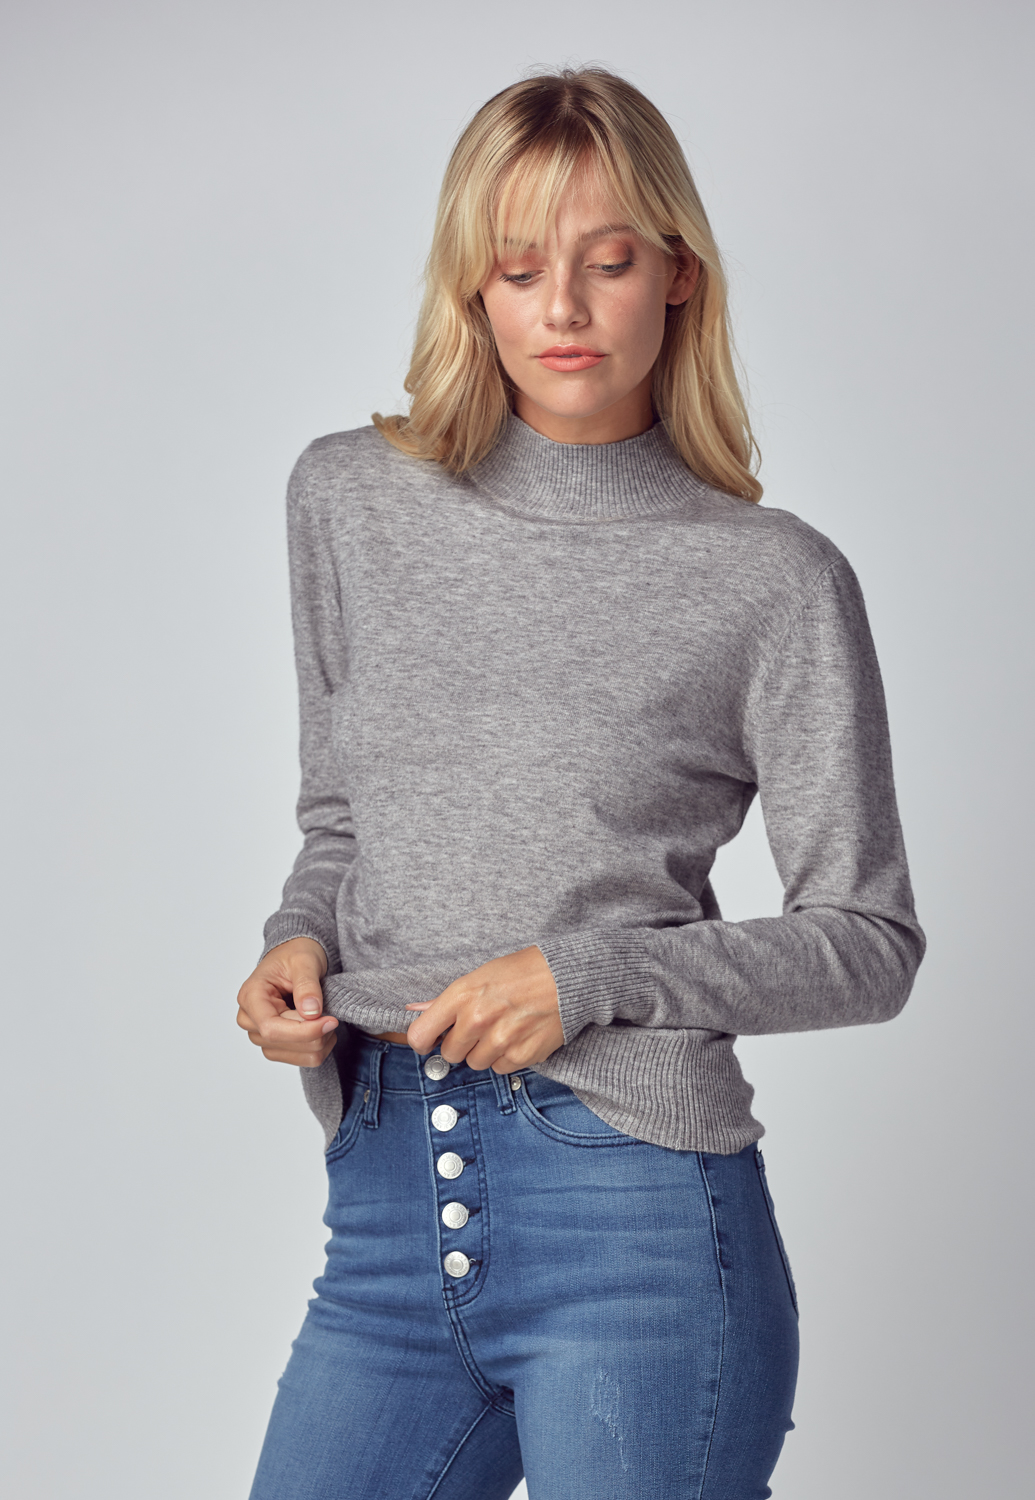 Basic Mock Neck Knit Sweater